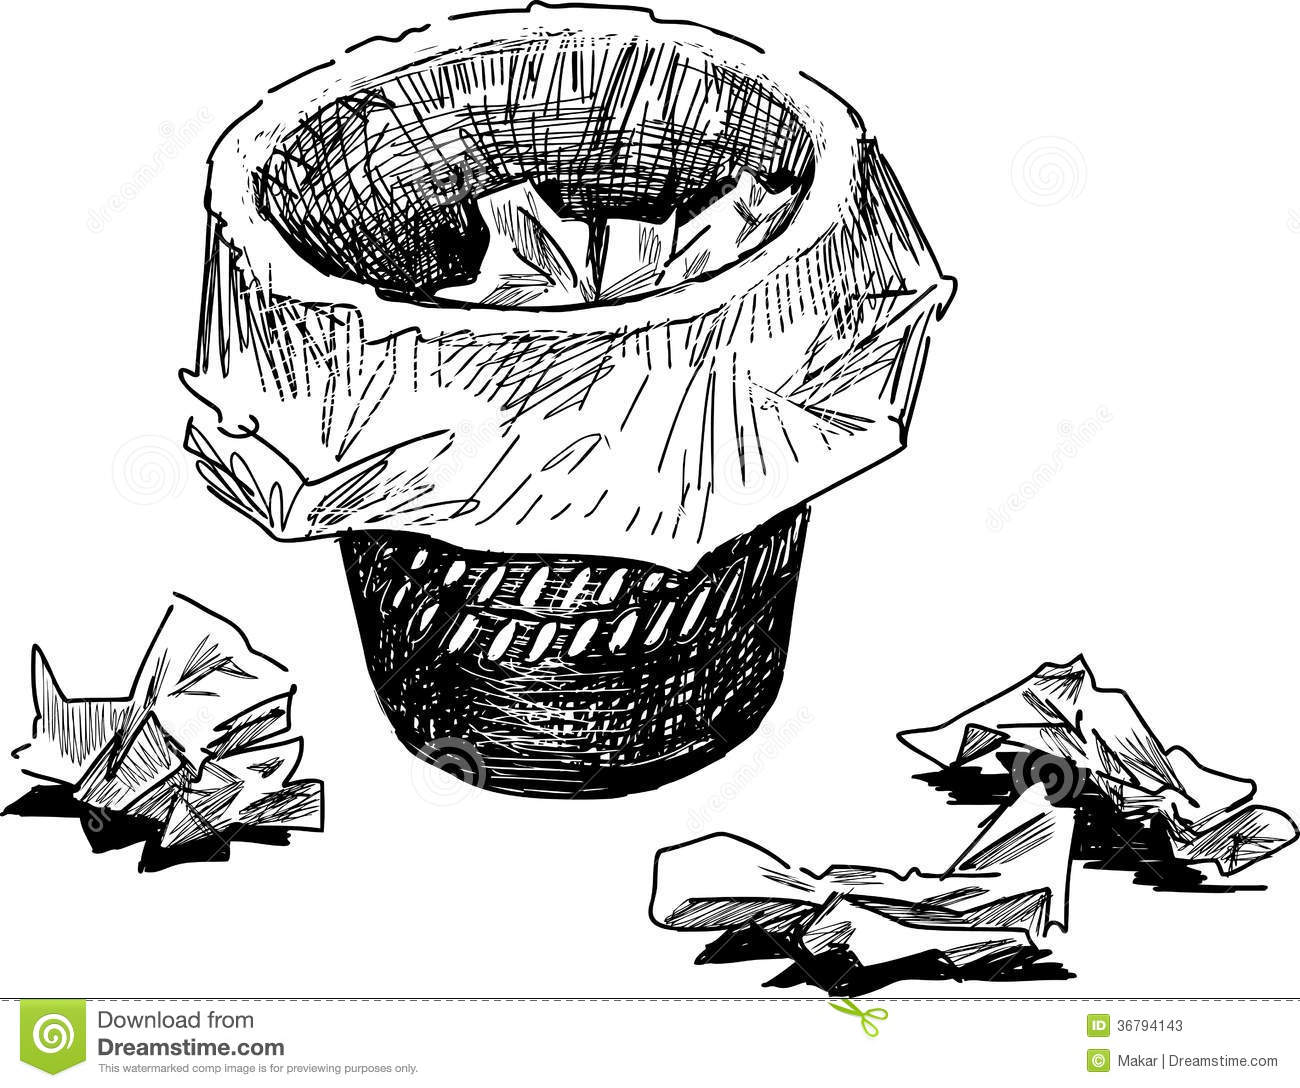 Art paper basket : Wastebasket stock image of waste garbage basket